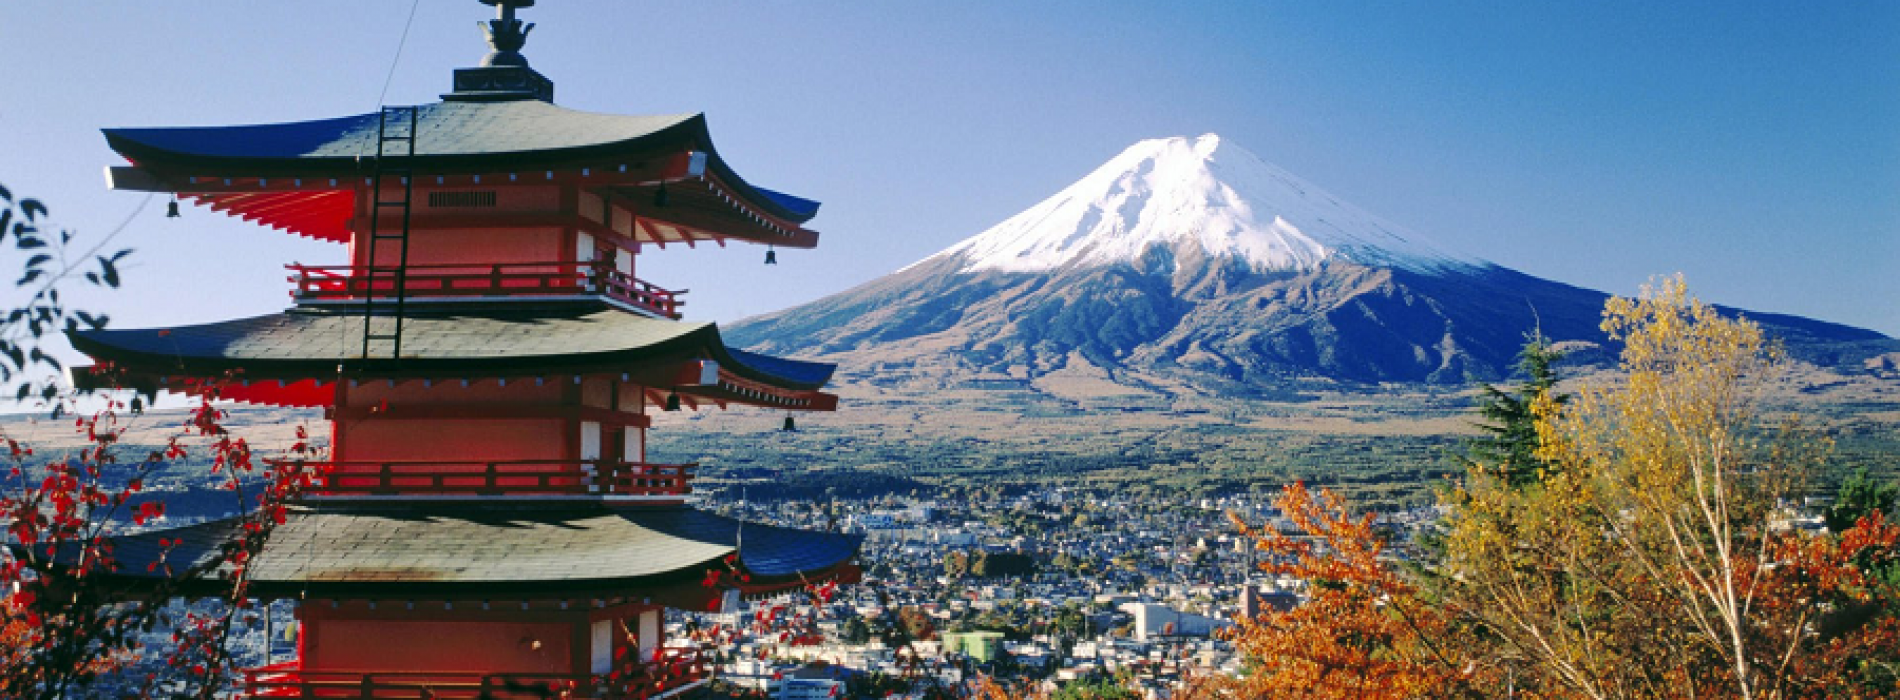 Best Place to Visit in Japan